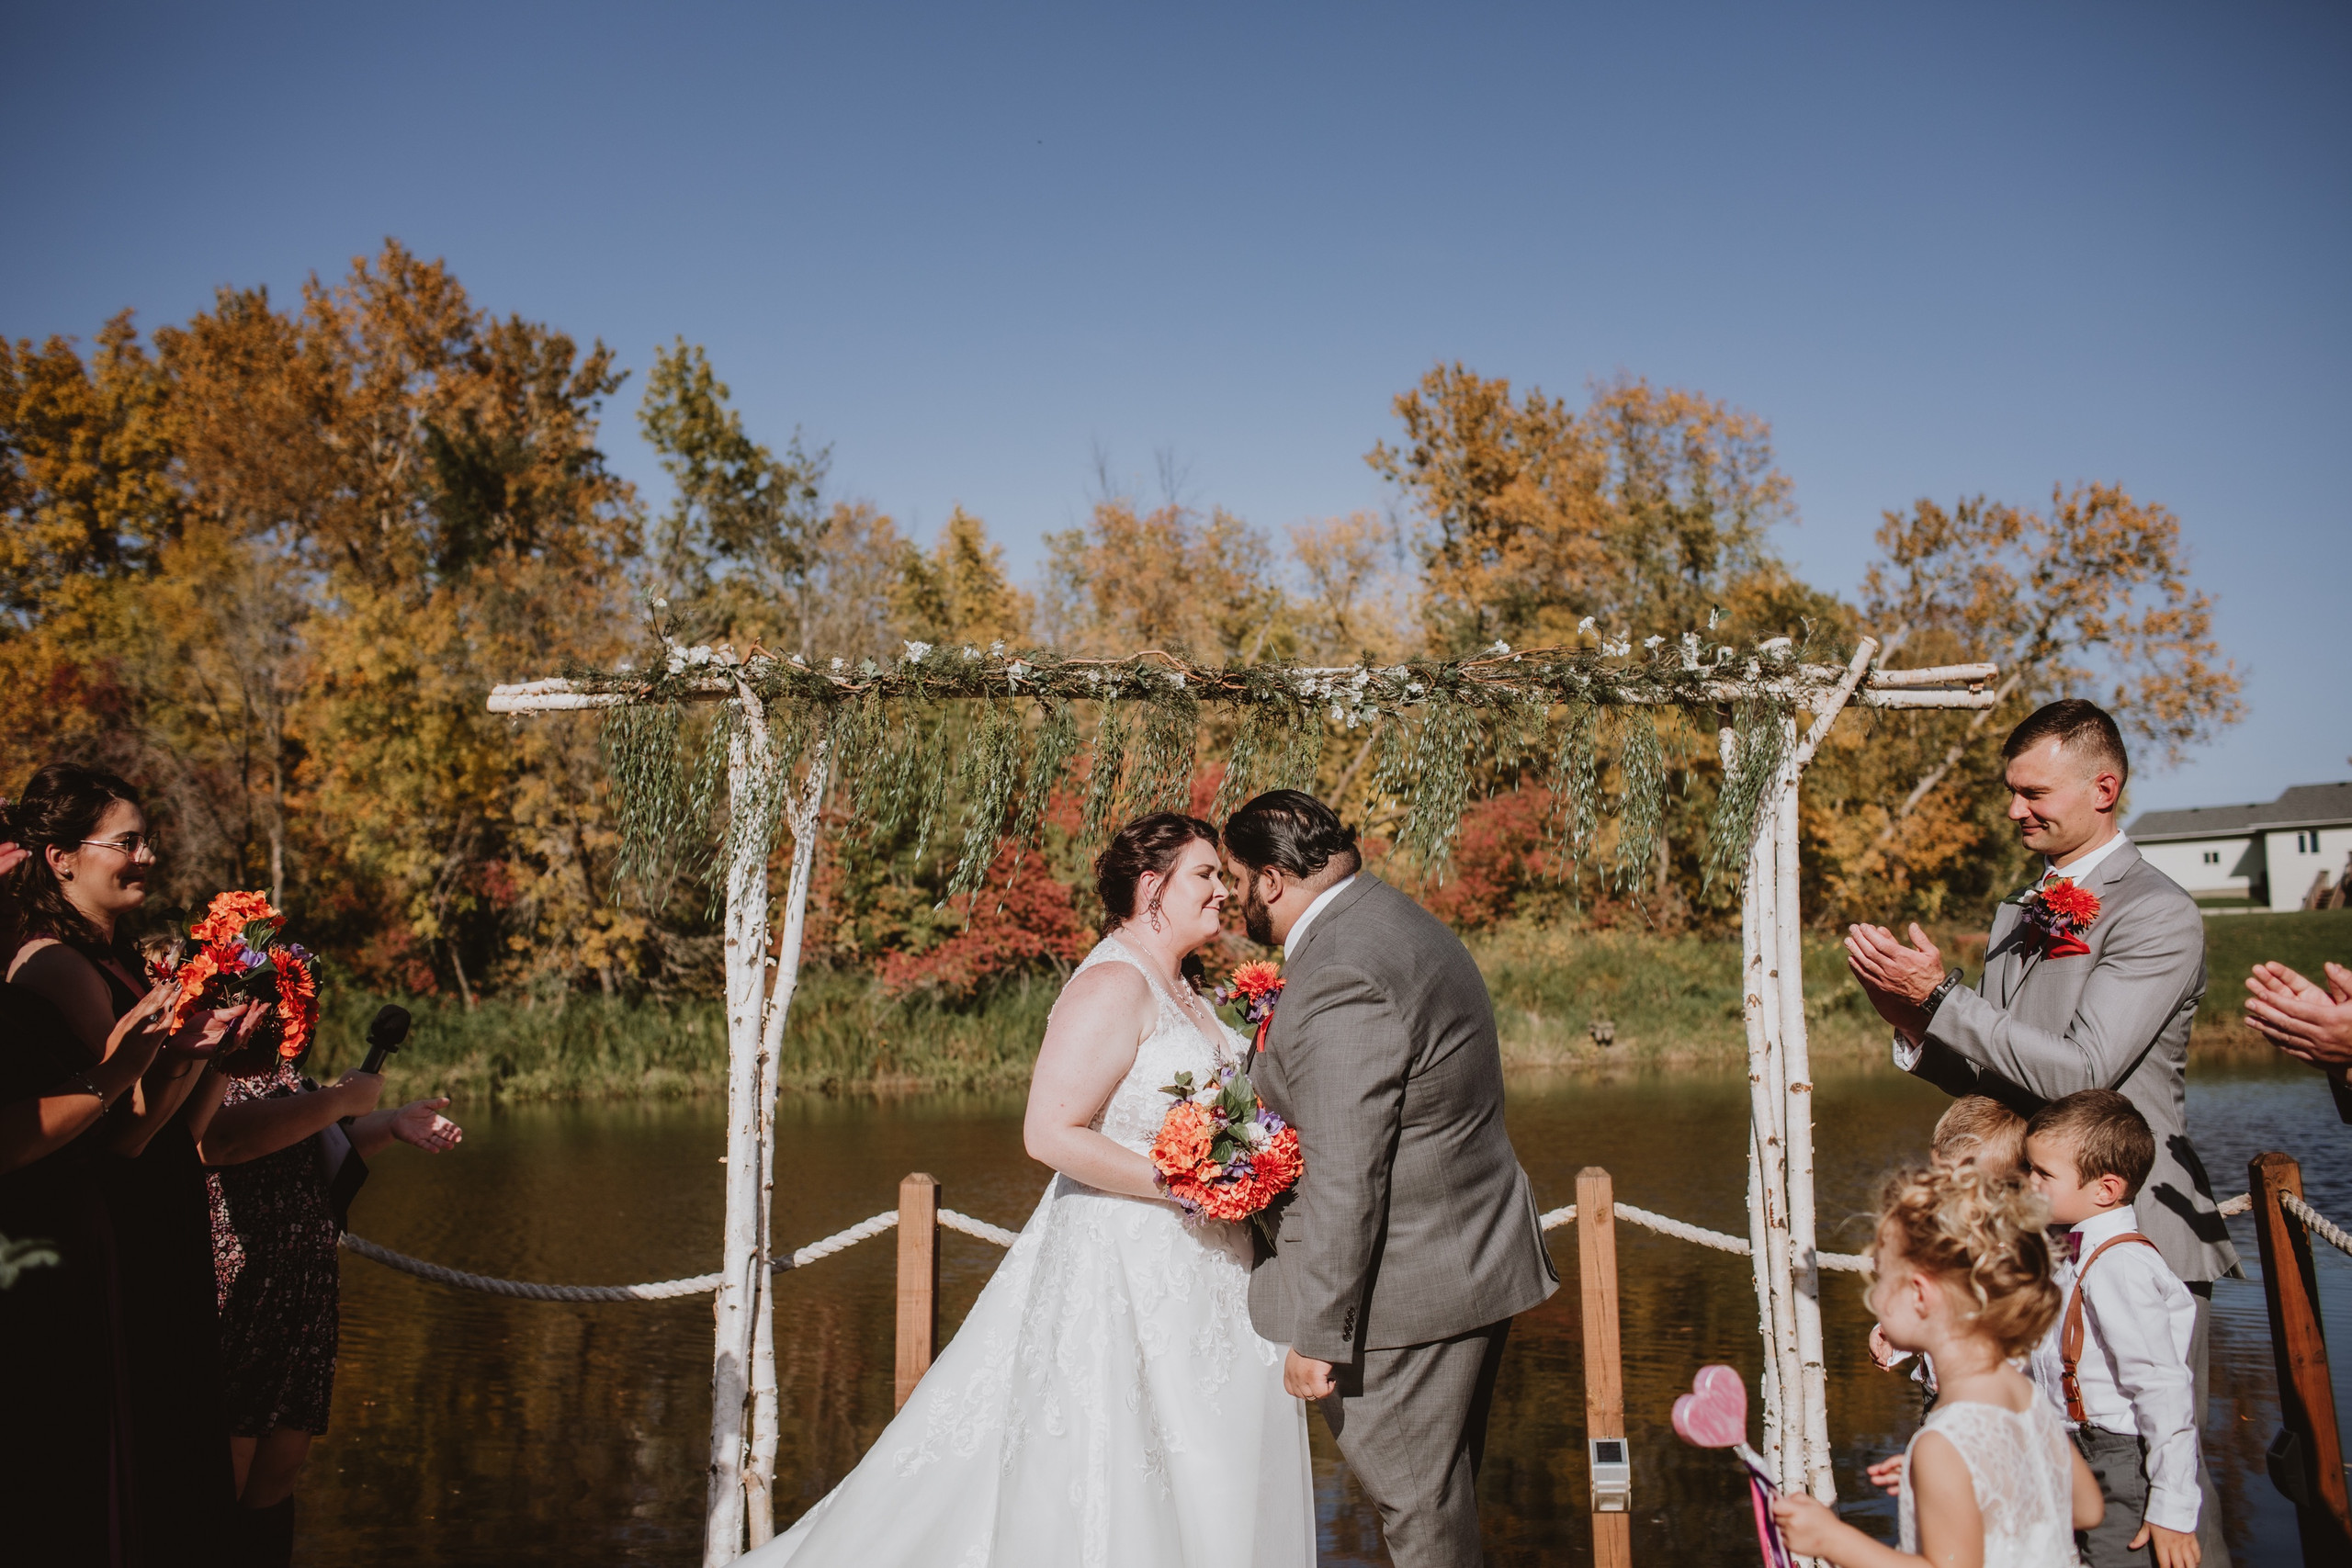 You May No Kiss - Wedding couple seals their union with a kiss during fall wedding ceremony.